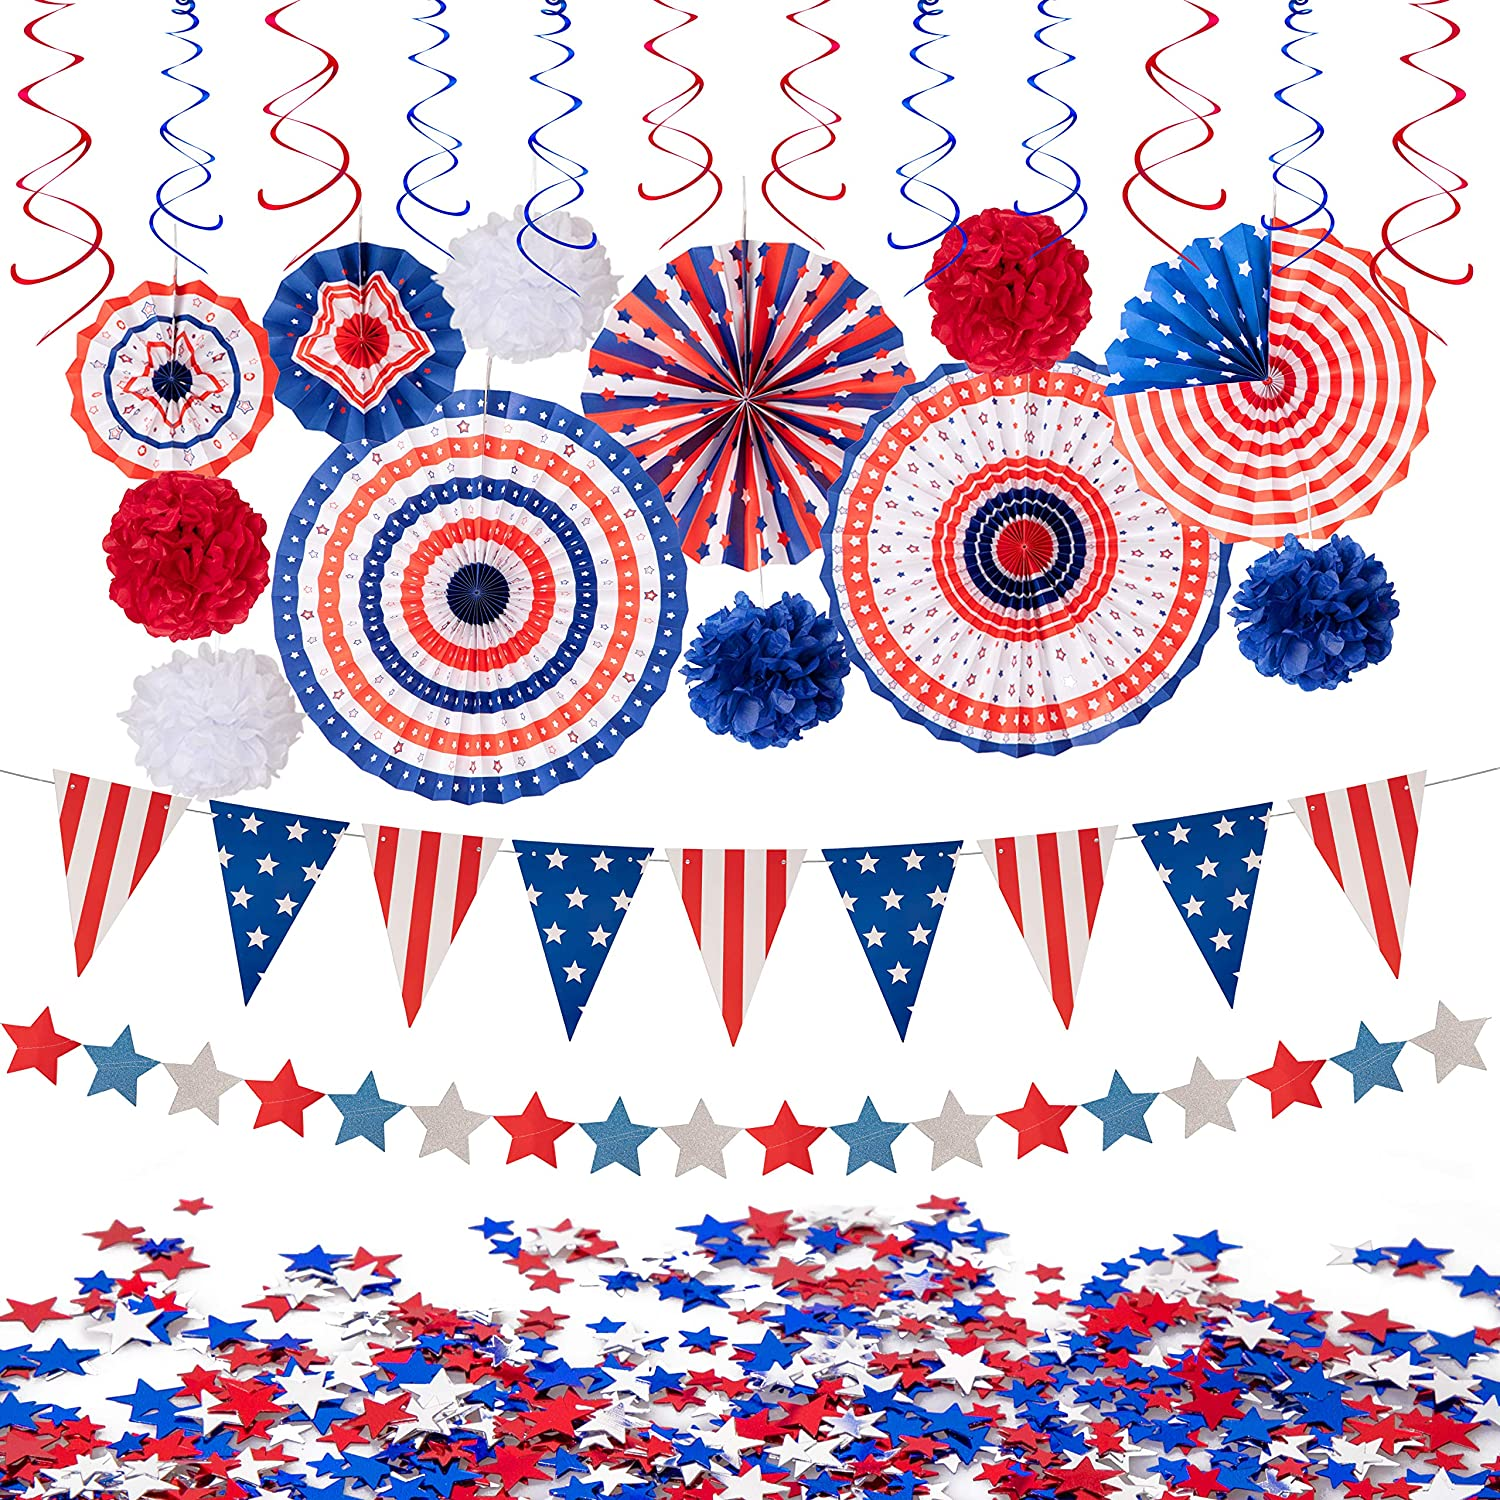 Amazon Com 29pcs 4th Fourth Of July Patriotic Decorations Set Red White Blue Paper Fans Usa Flag Pennant Star Streamer Pom Poms Hanging Swirls Party Decor Supplies Home Kitchen